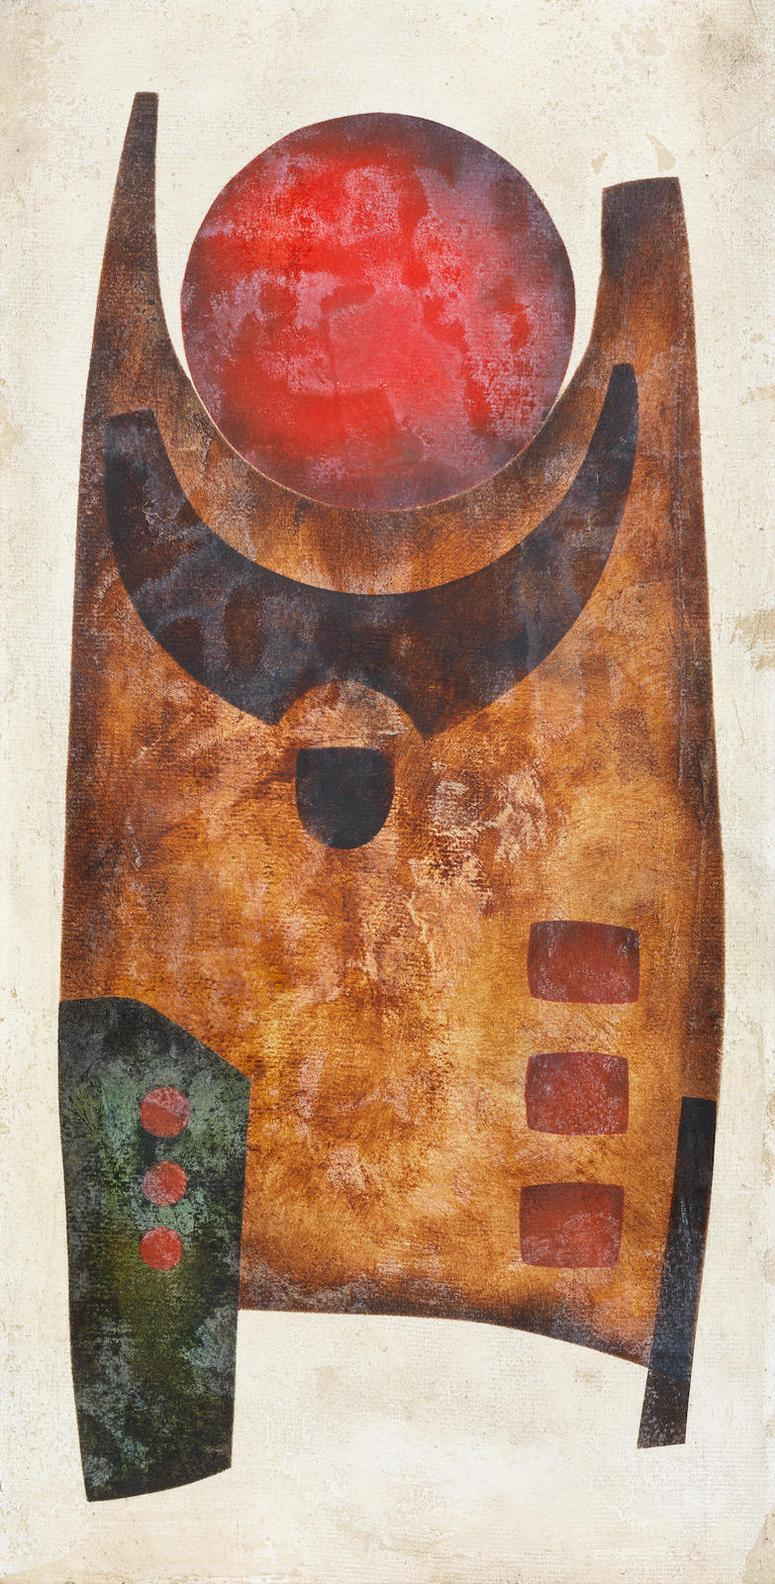 Hannes Harrs - Three Works: (i) Abstract with red circle; (ii) Cubist abstract in brown; (iii) Abstract with interlocking forms-1972